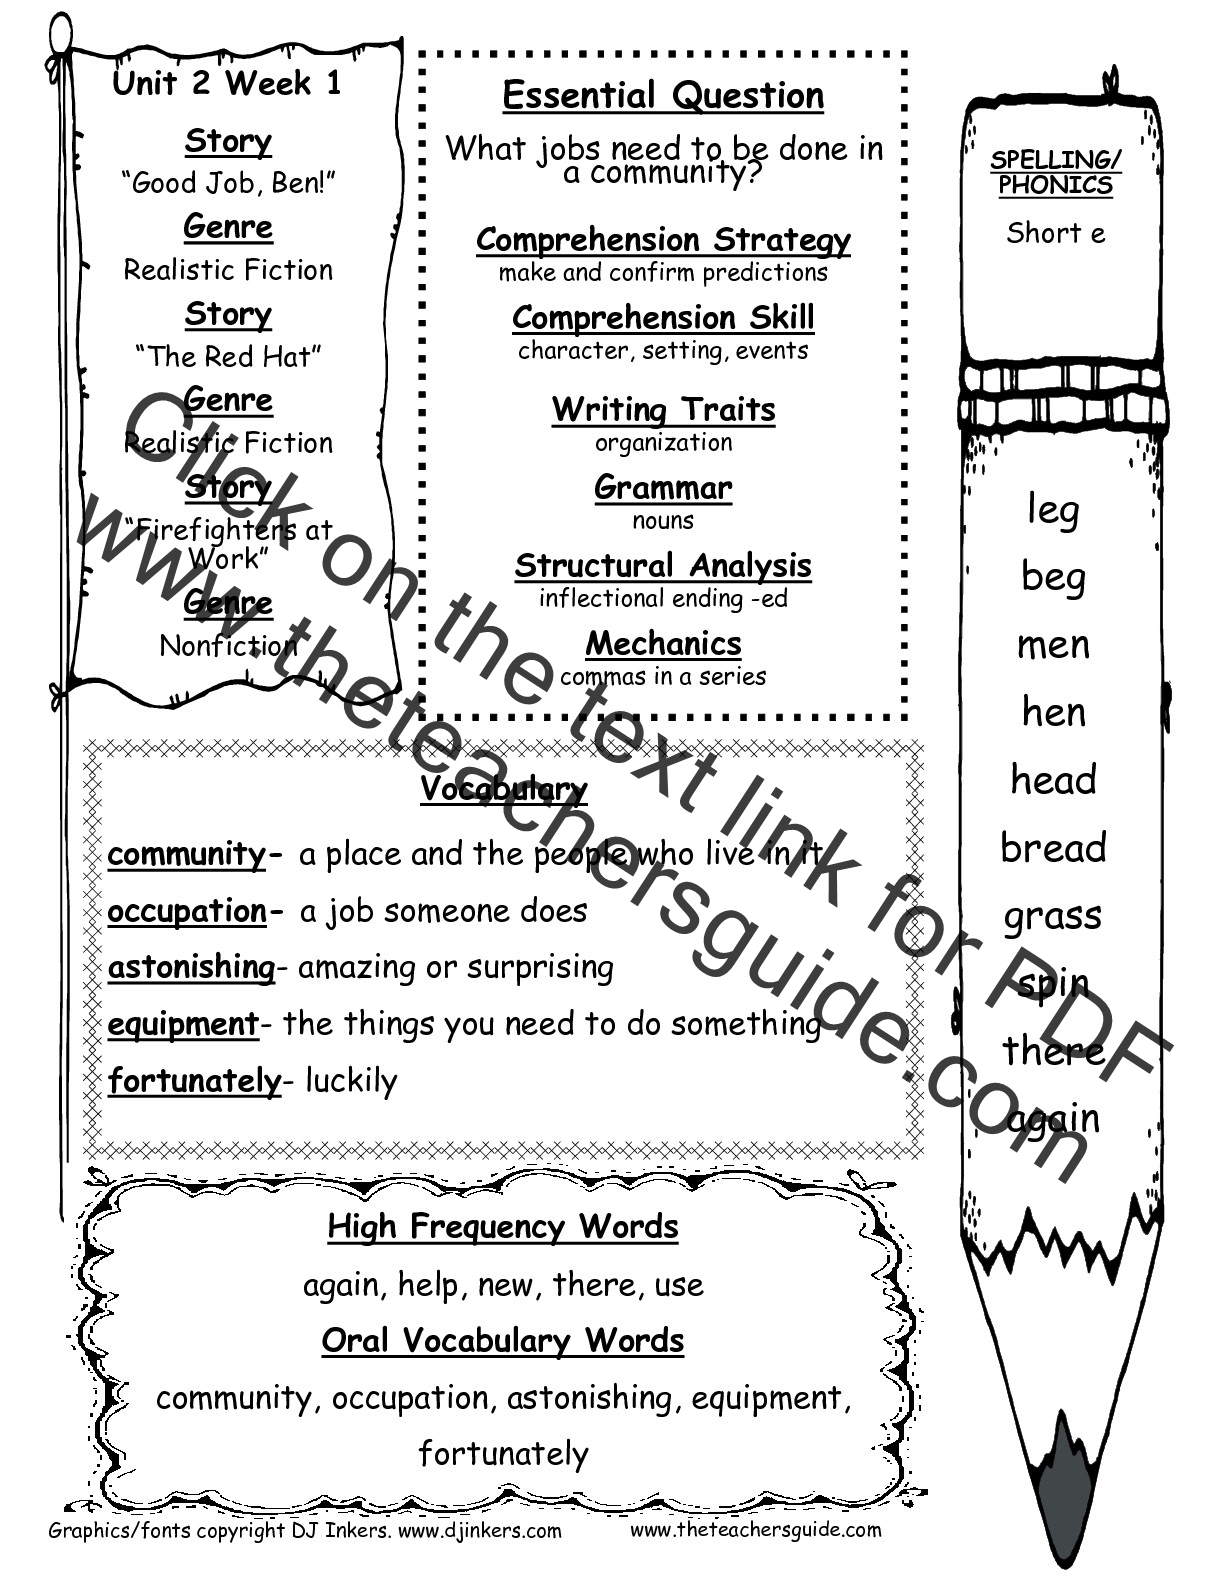 worksheet Free Reading Comprehension Worksheets For 1st Grade mcgraw hill wonders first grade resources and printouts reading 1st grade